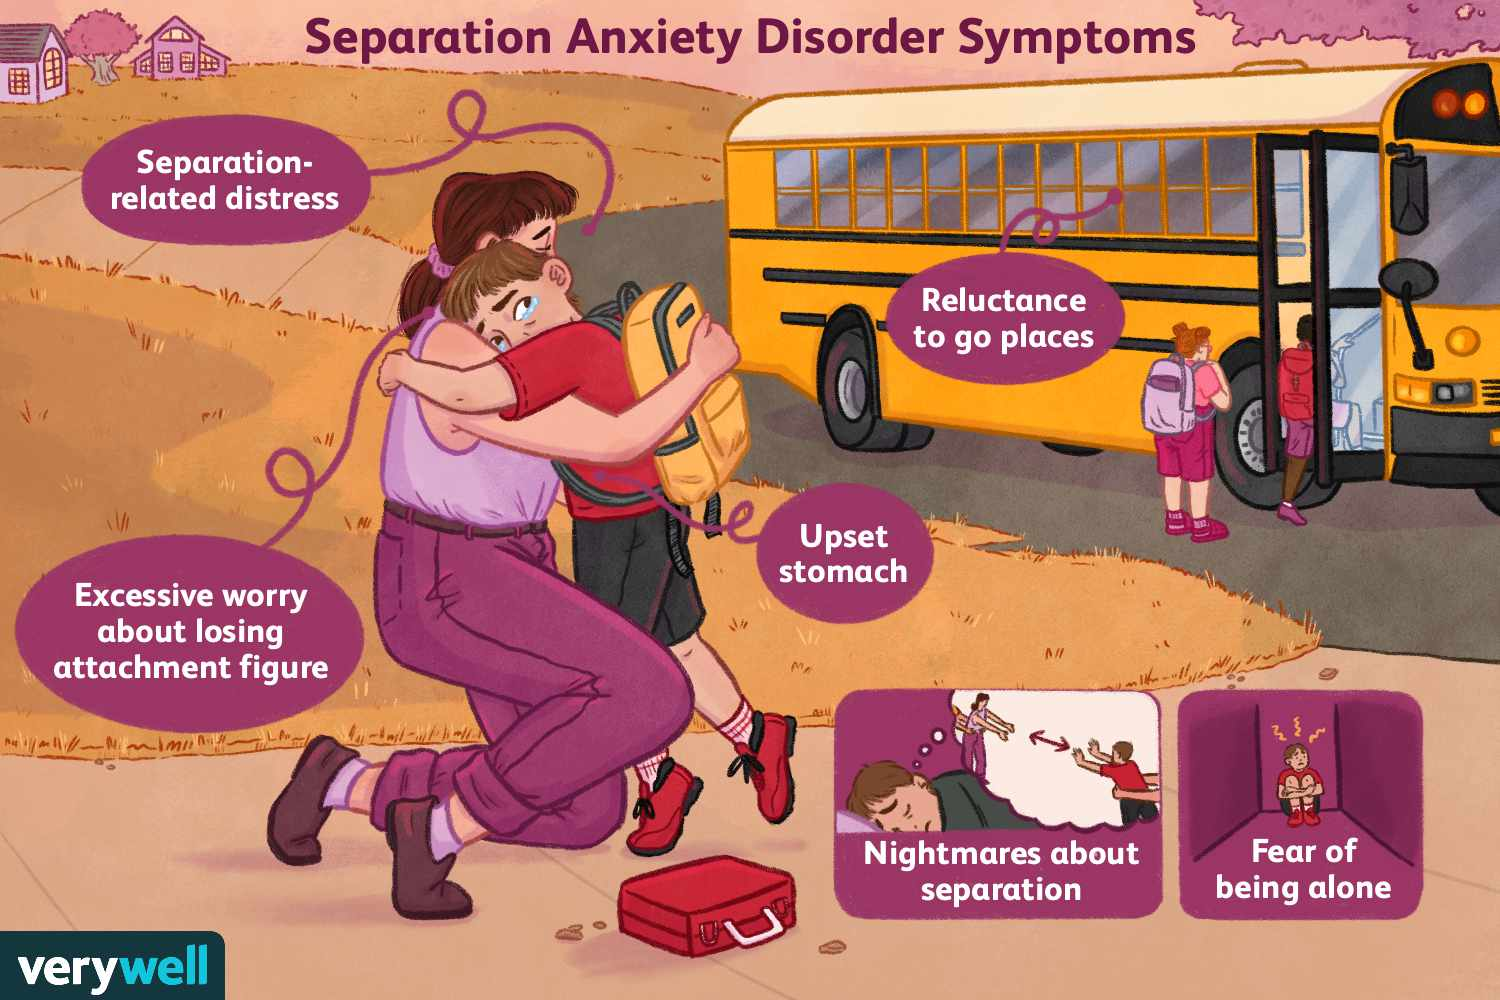 Separation Anxiety Disorder Symptoms